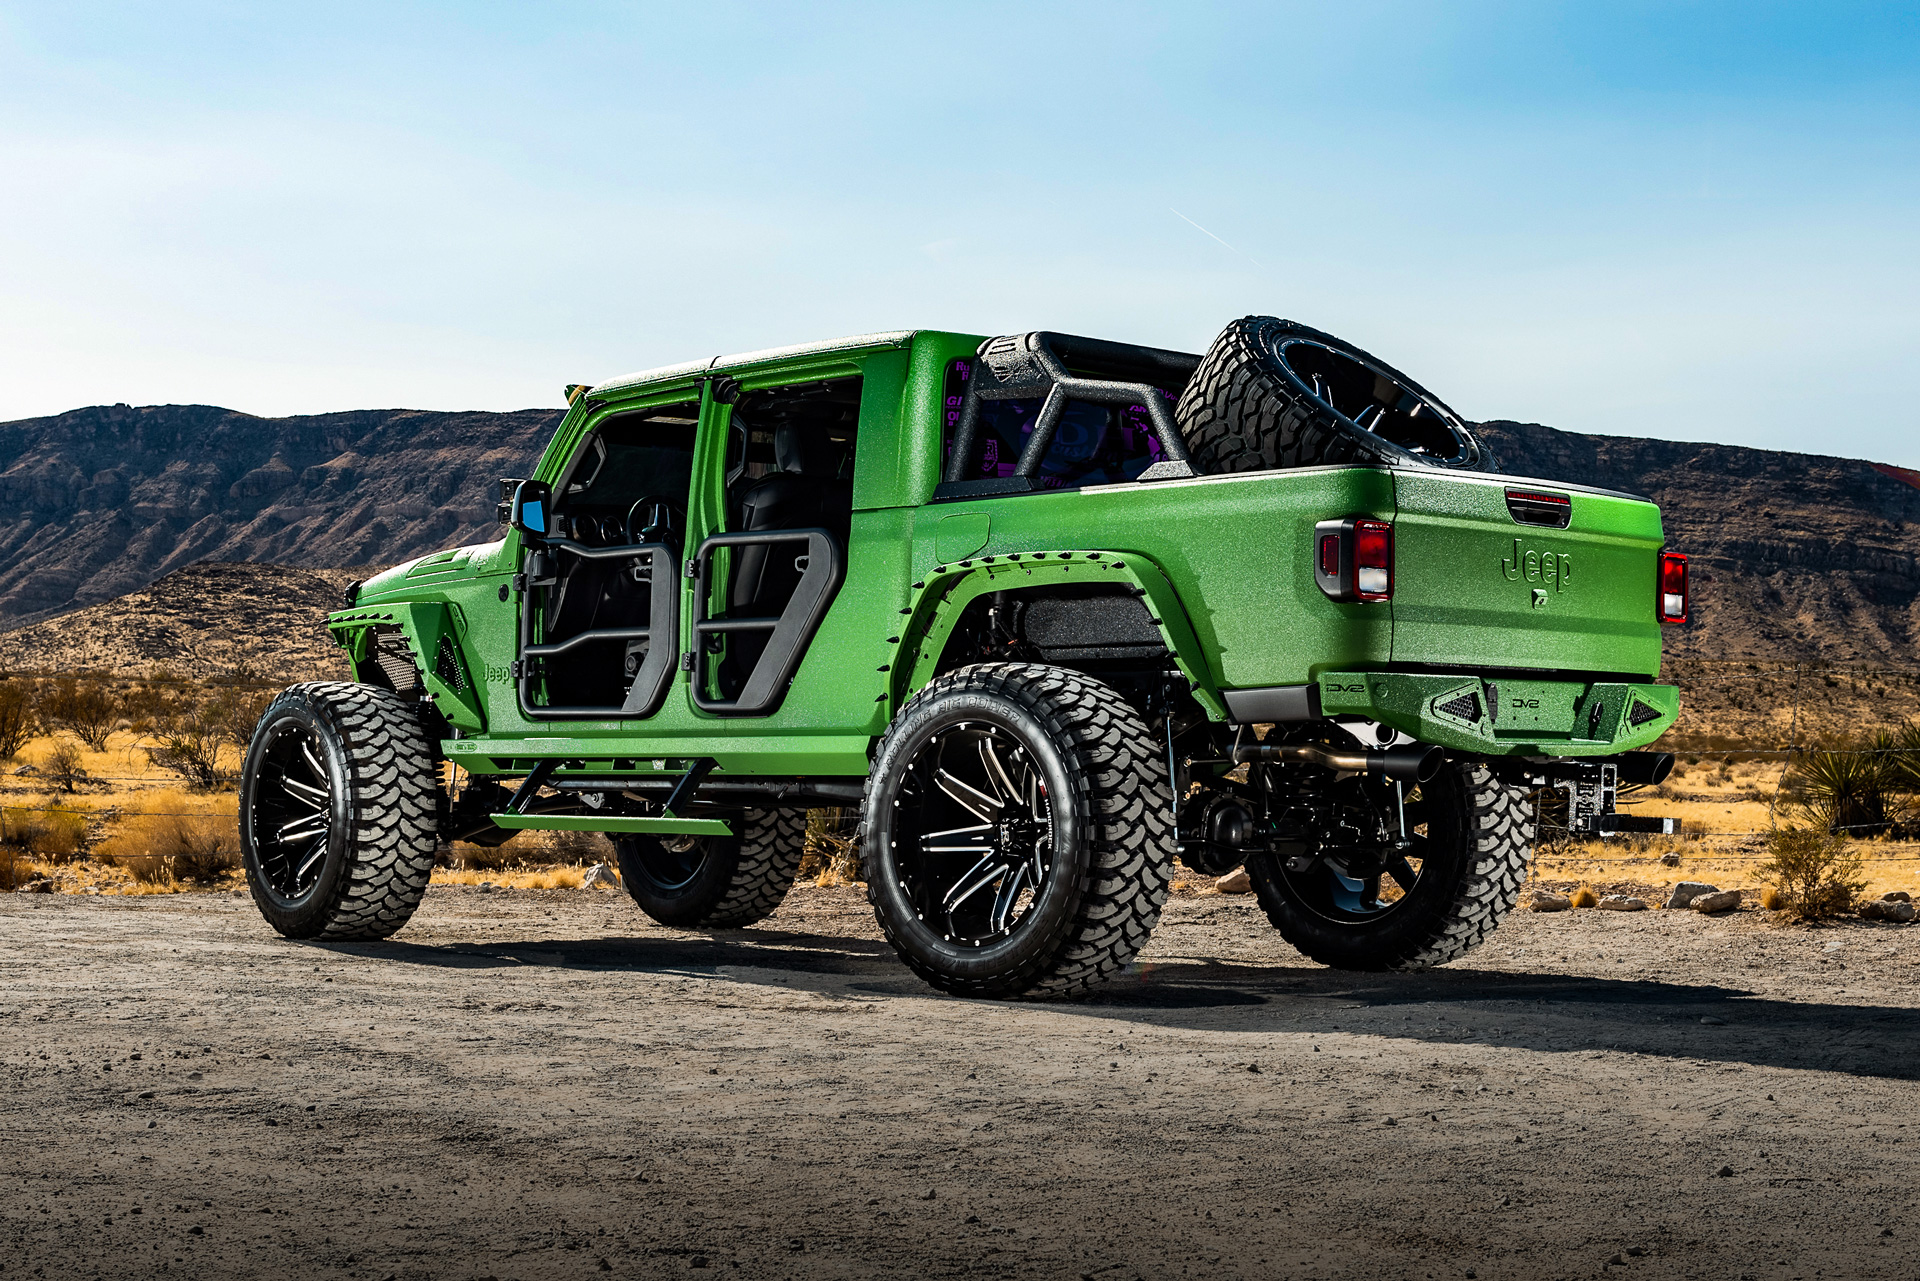 H502 PainKiller 24x14 Harådrock Offroad Wheels Lifted Jeep Gladiator SEMA 2019